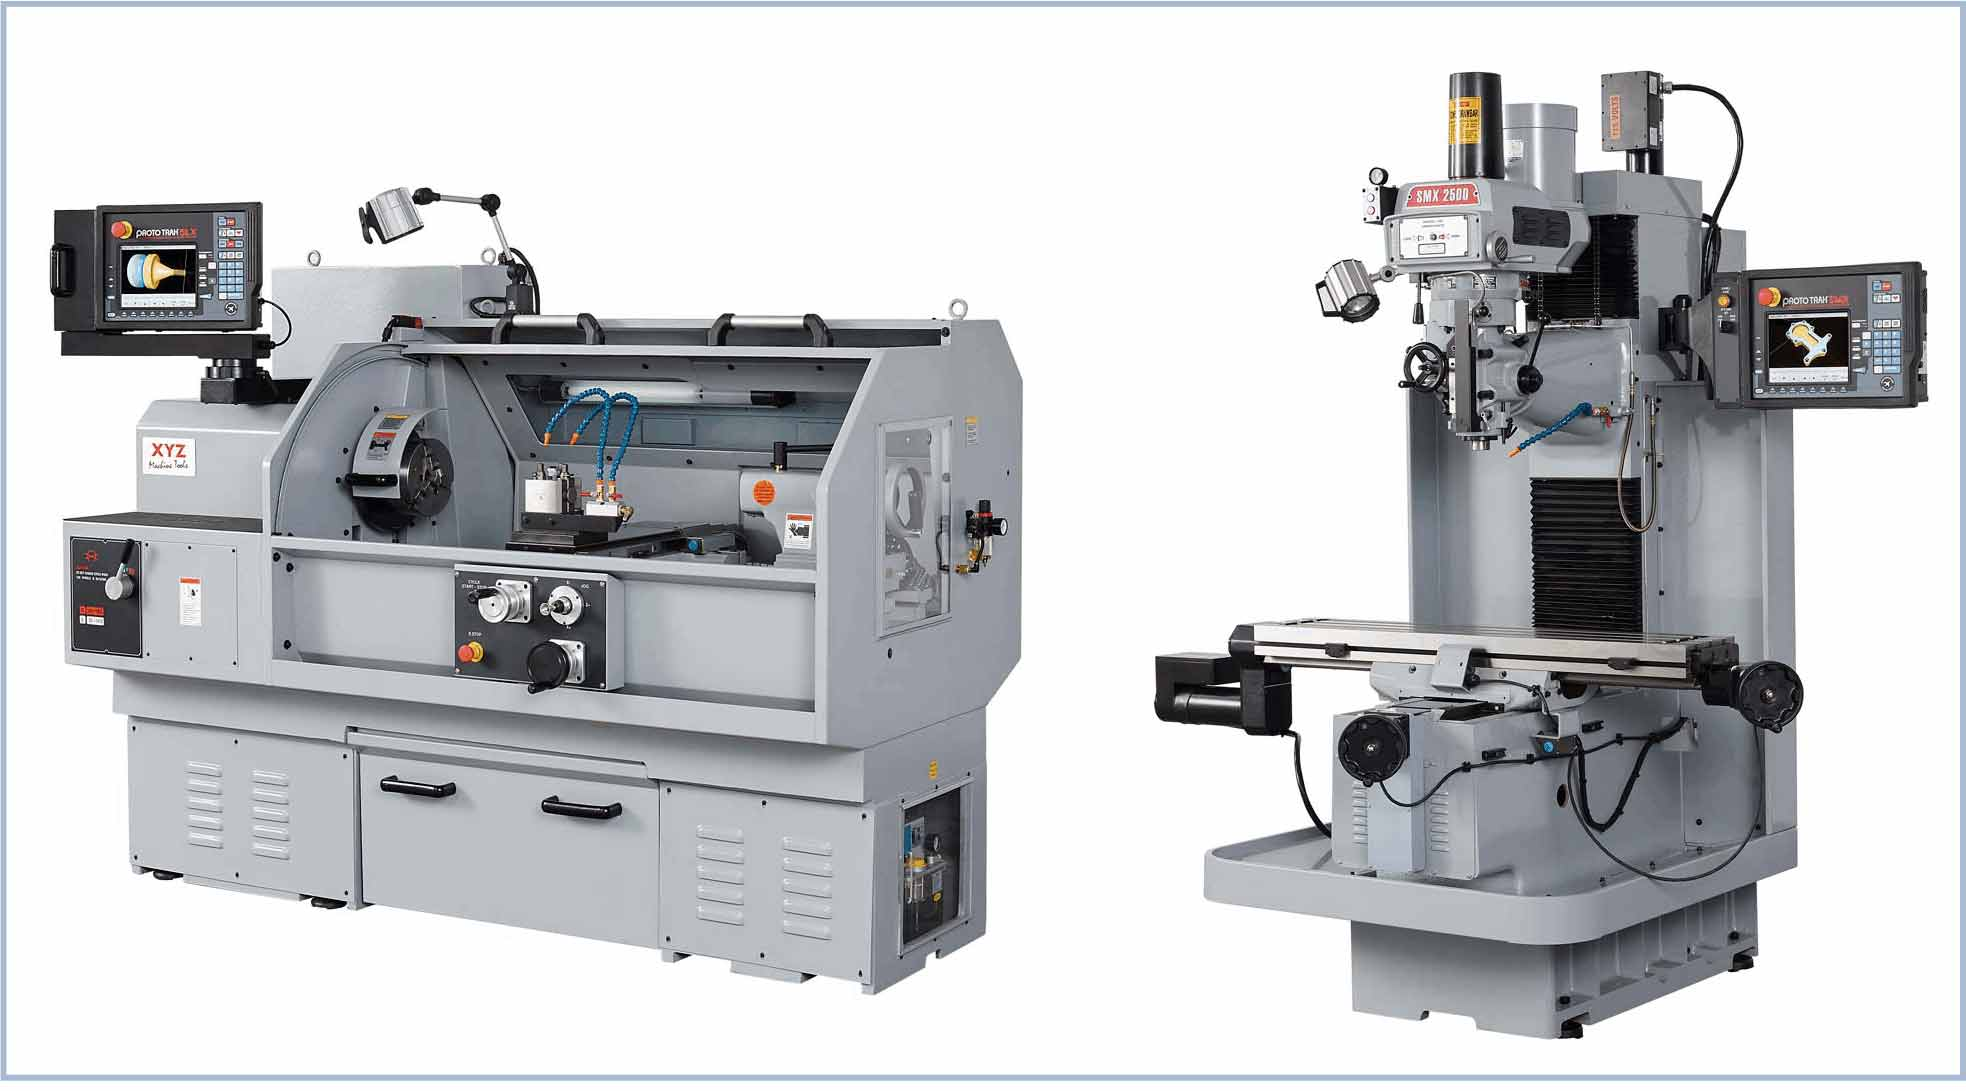 lcm-systems-invest-ps40000-xyz-cnc-mill-lathe-expand-internal-machining-facility